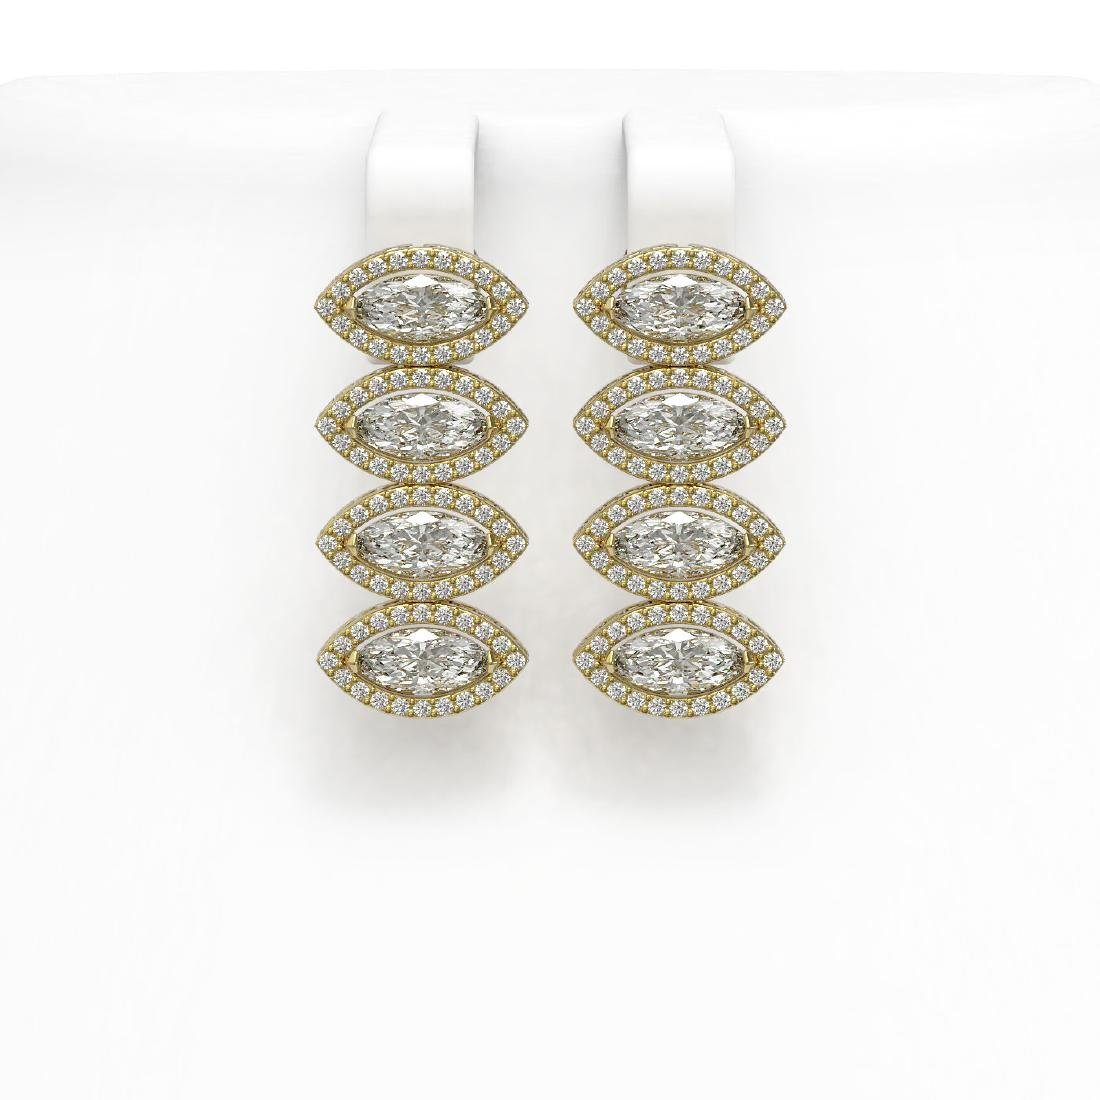 5.92 CTW Marquise Diamond Designer Earrings 18K Yellow